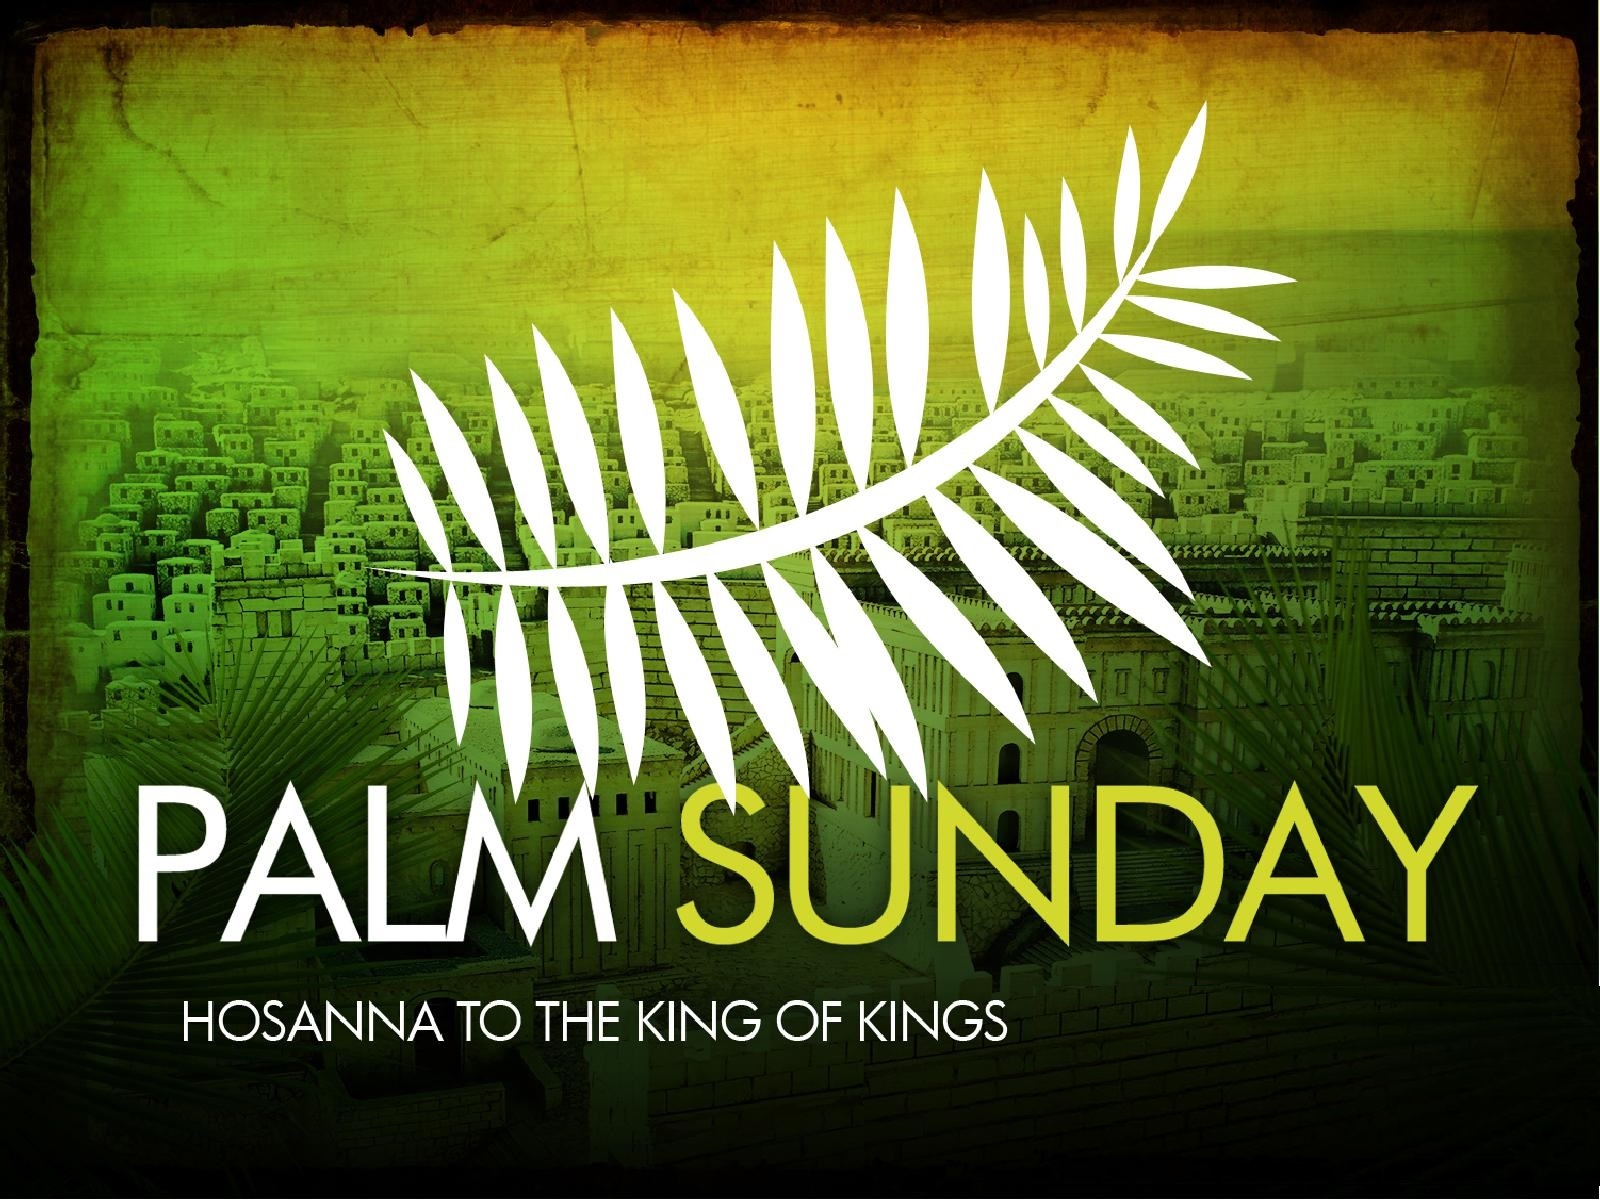 2019 Palm Sunday Hosanna edit.jpg